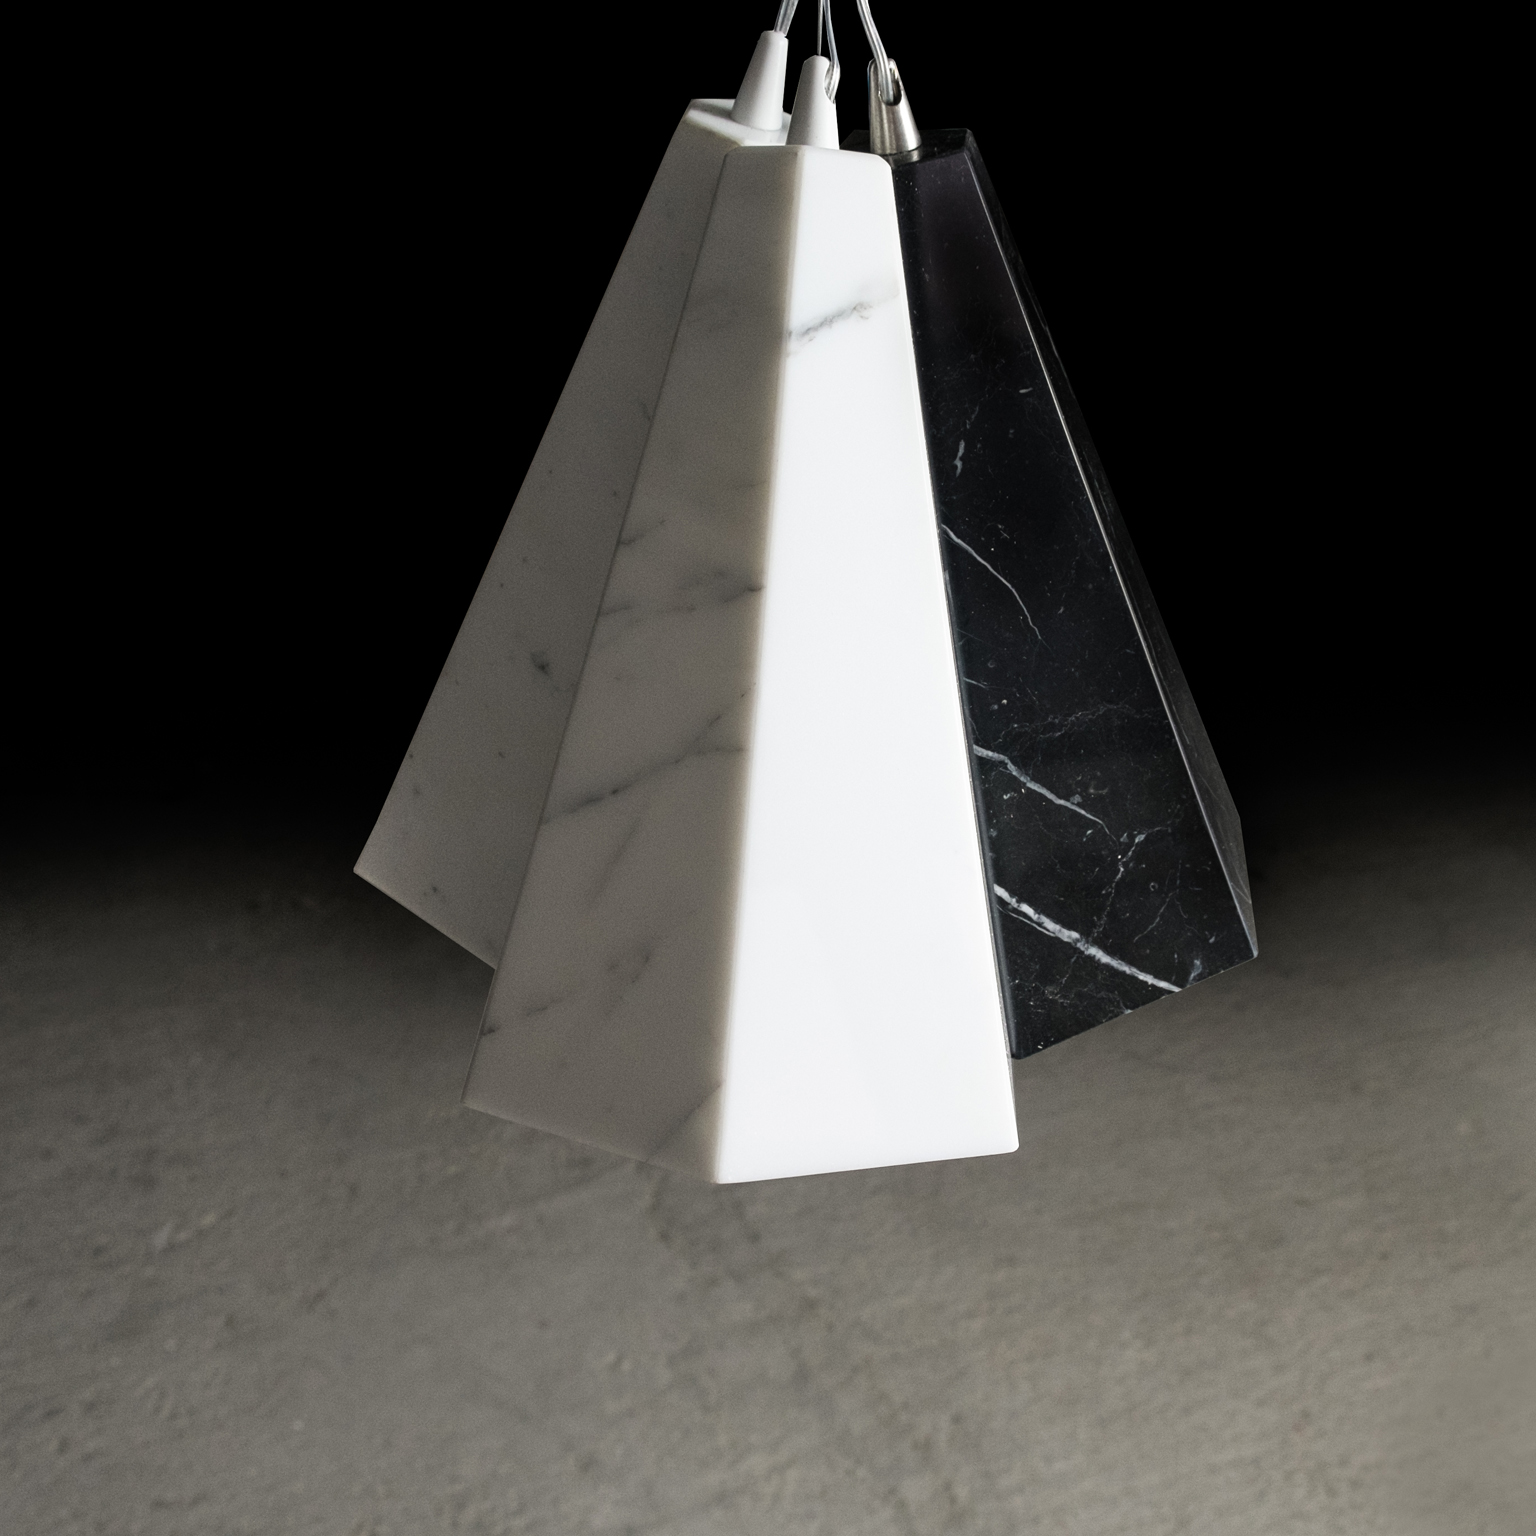 Marble Cone Pendant Light - The Marble Cone Pendant Light is a light handmade in Italy with three different types of marble. It can be used as a single element, or by adding more units it can create a modular structure that can evolve and blossom.  Each piece is sold individually.   Matter of Stuff